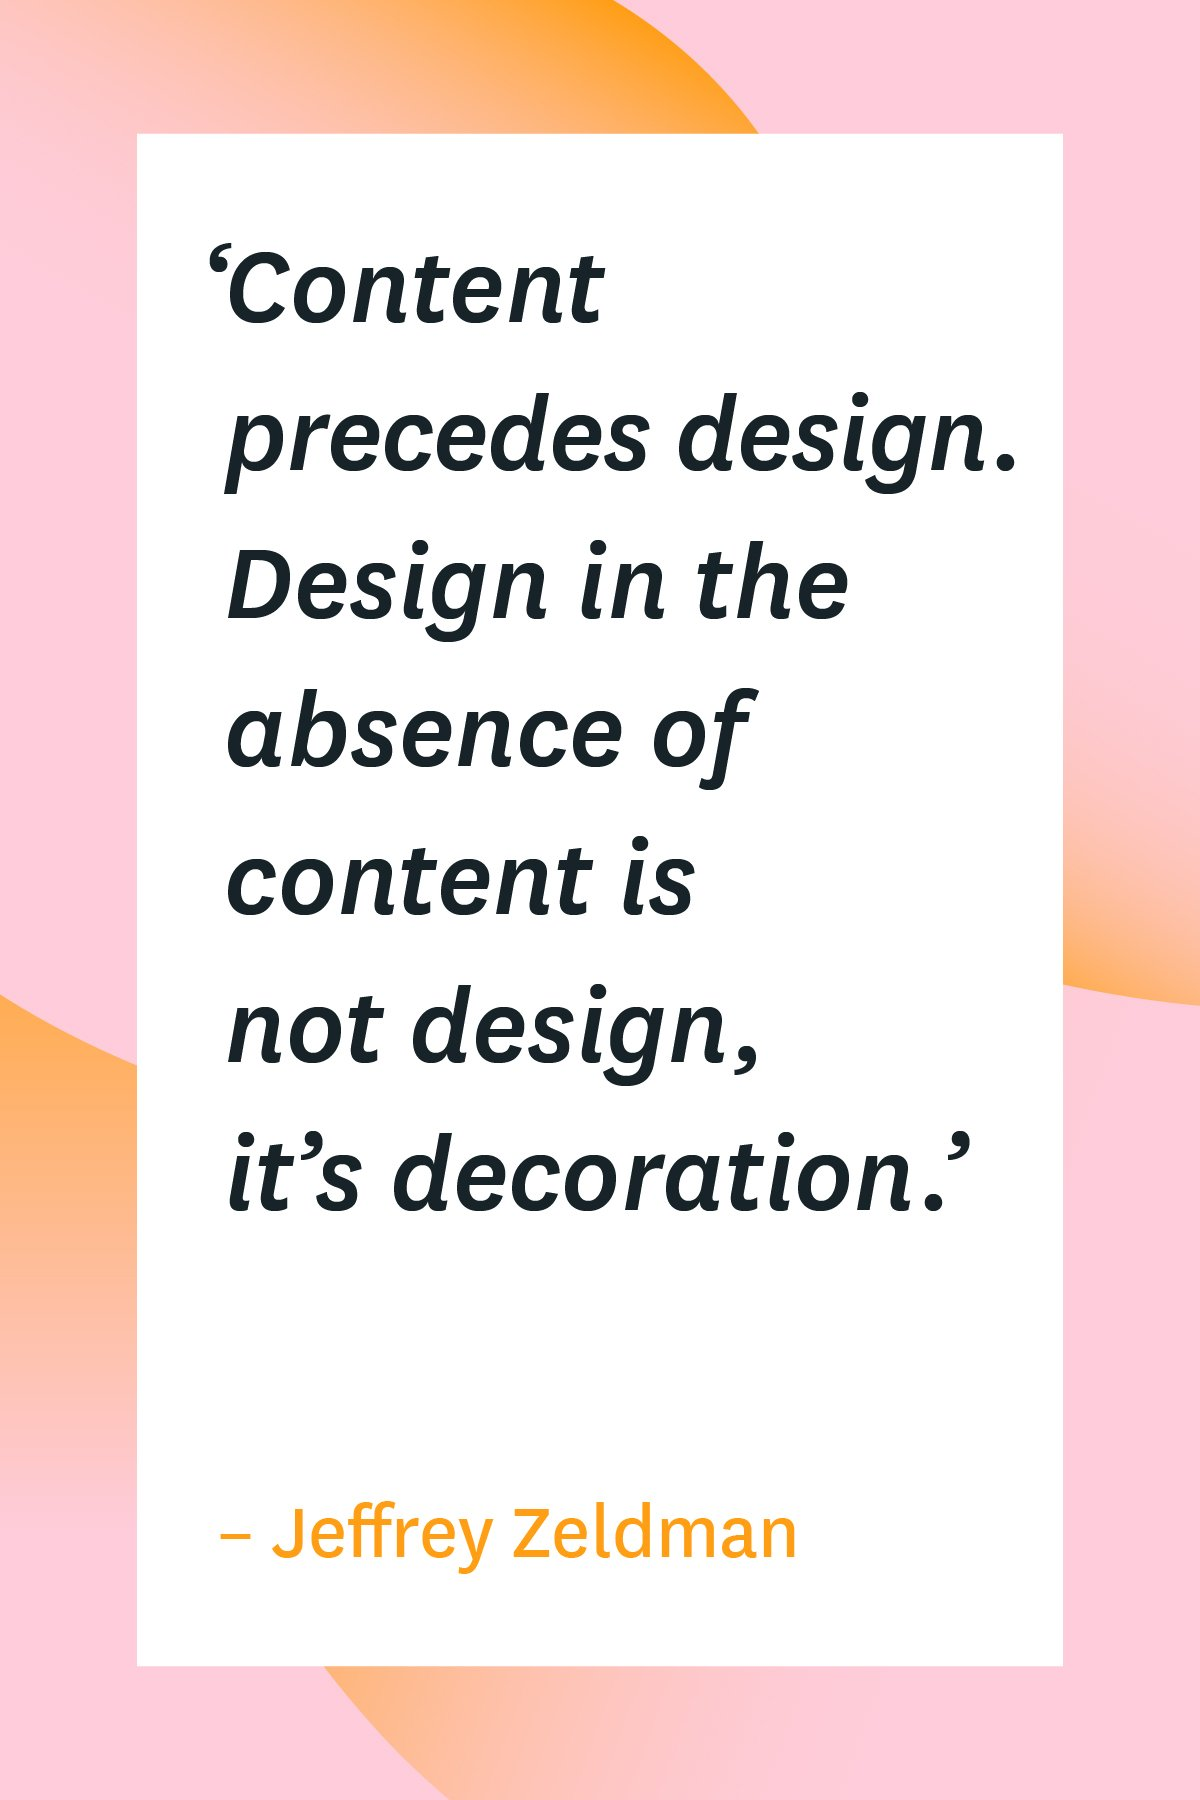 Get inspired with these 101 quotes about design and creativity. #design #quotes